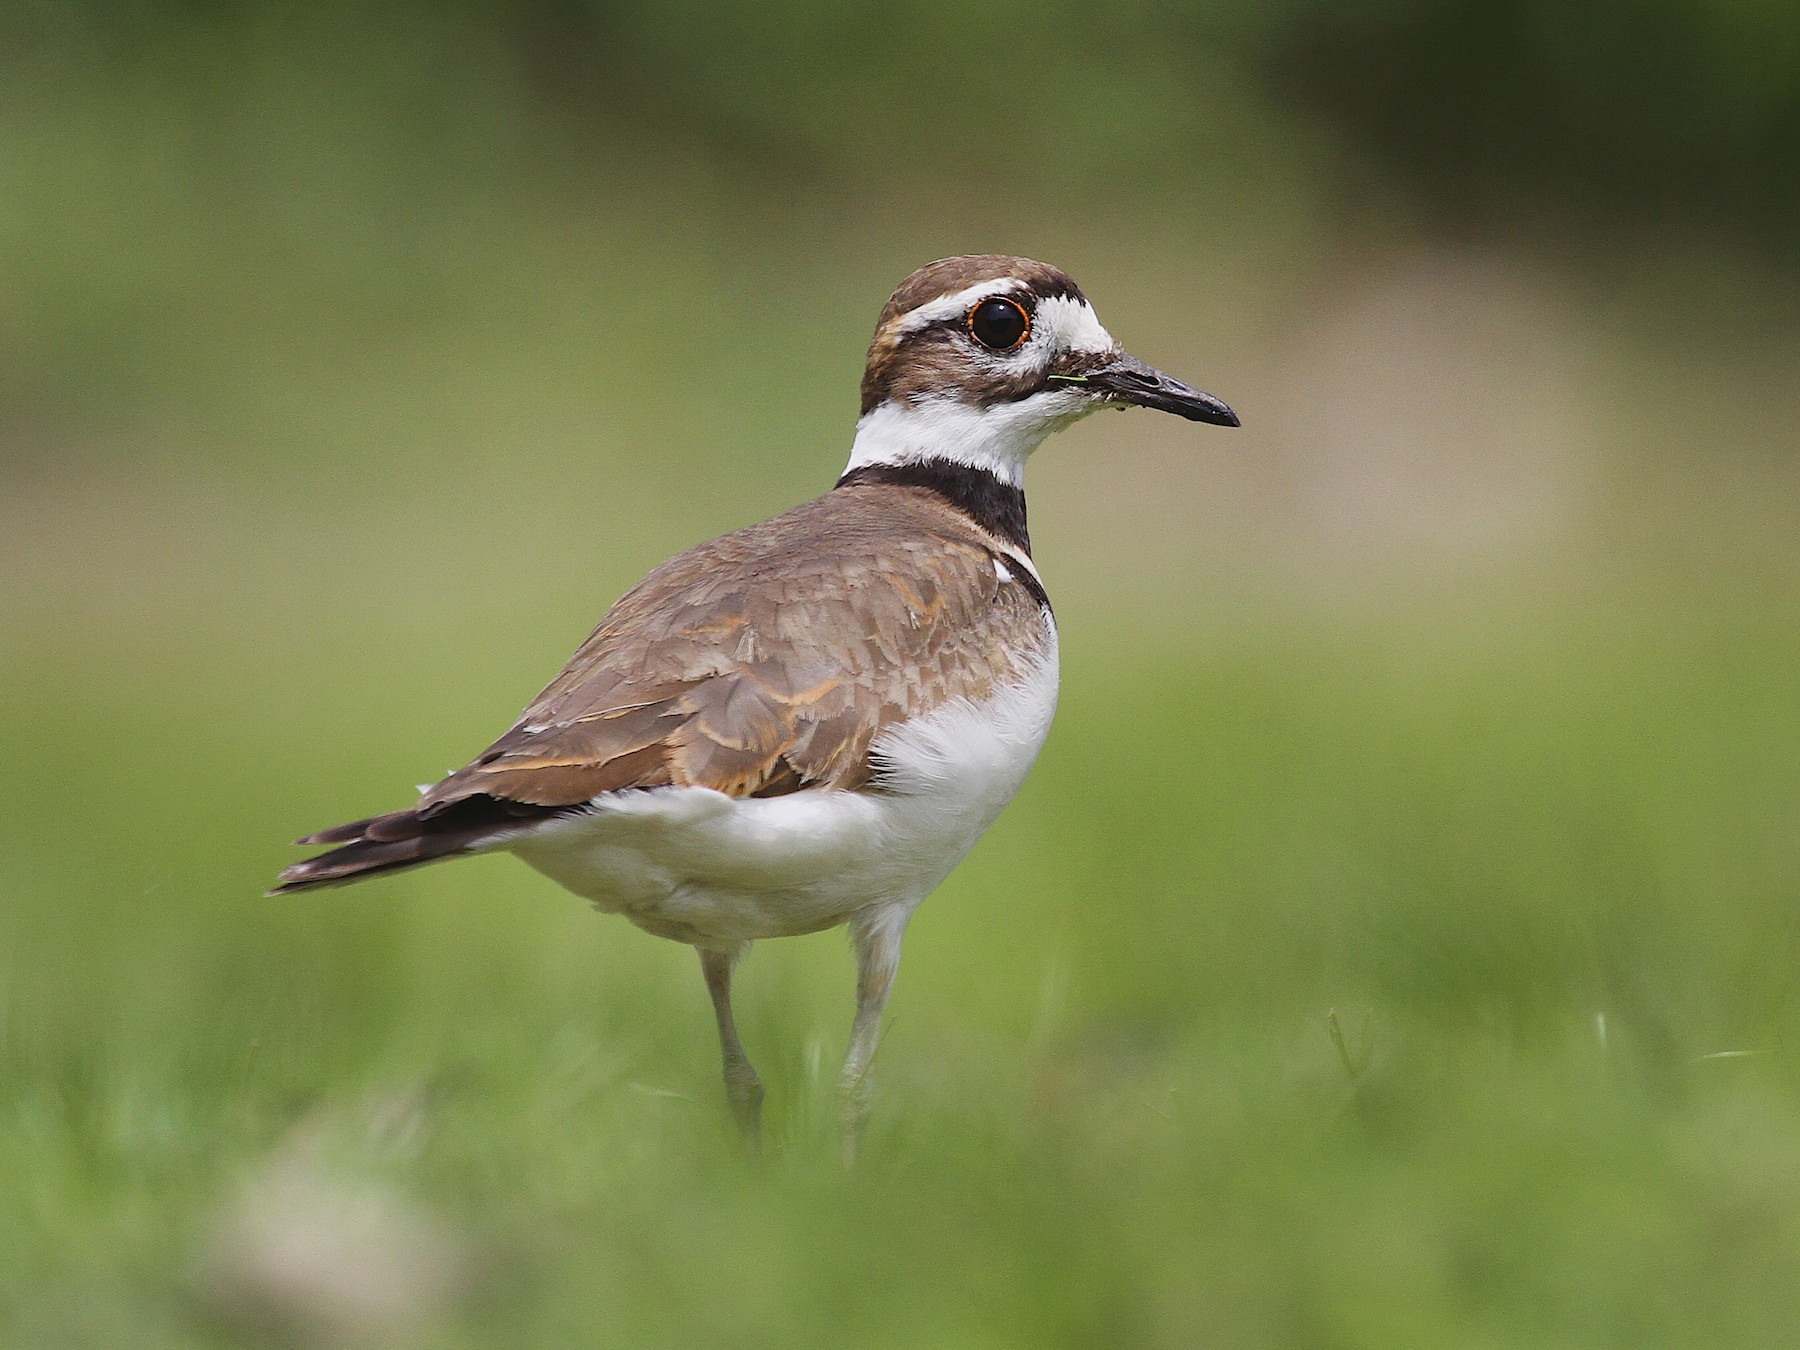 Killdeer - Ryan Schain